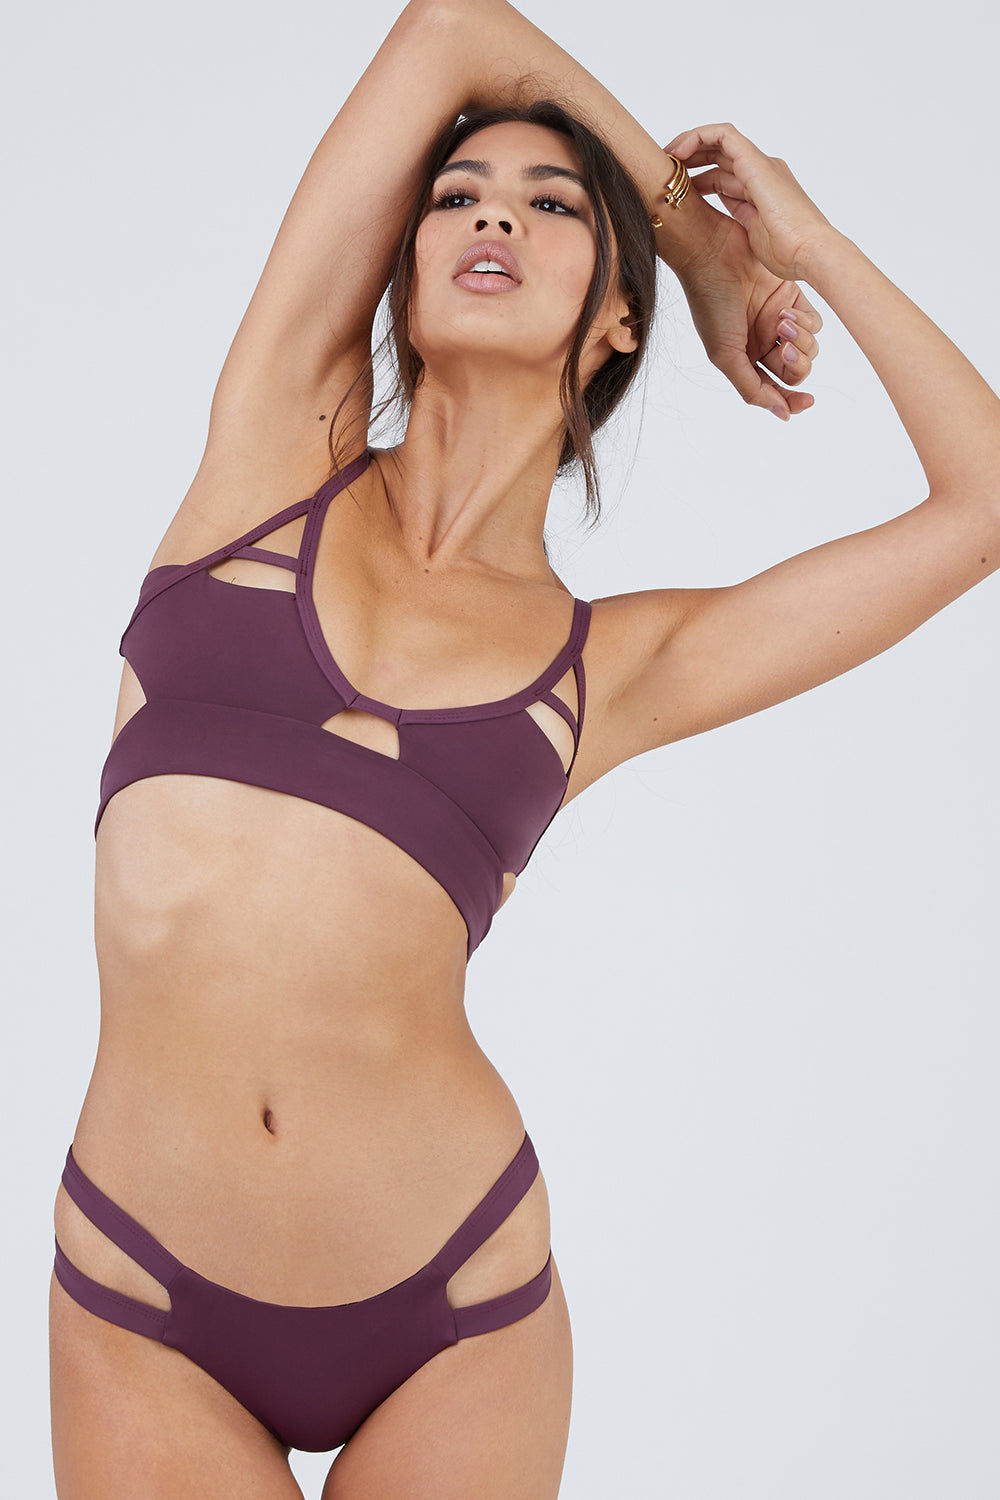 TAVIK Jessi Cut Out Triangle Bikini Top - Merlot Bikini Top | Merlot| Tavik Jessi Cut Out Triangle Bikini Top - Merlot V-neck fixed cut out triangle bralette seamless bikini top in merlot purple. Front cut-outs expose some skin and create a sporty look. Wide underbust band provides extra support for your bust. Adjustable spaghetti straps Front View